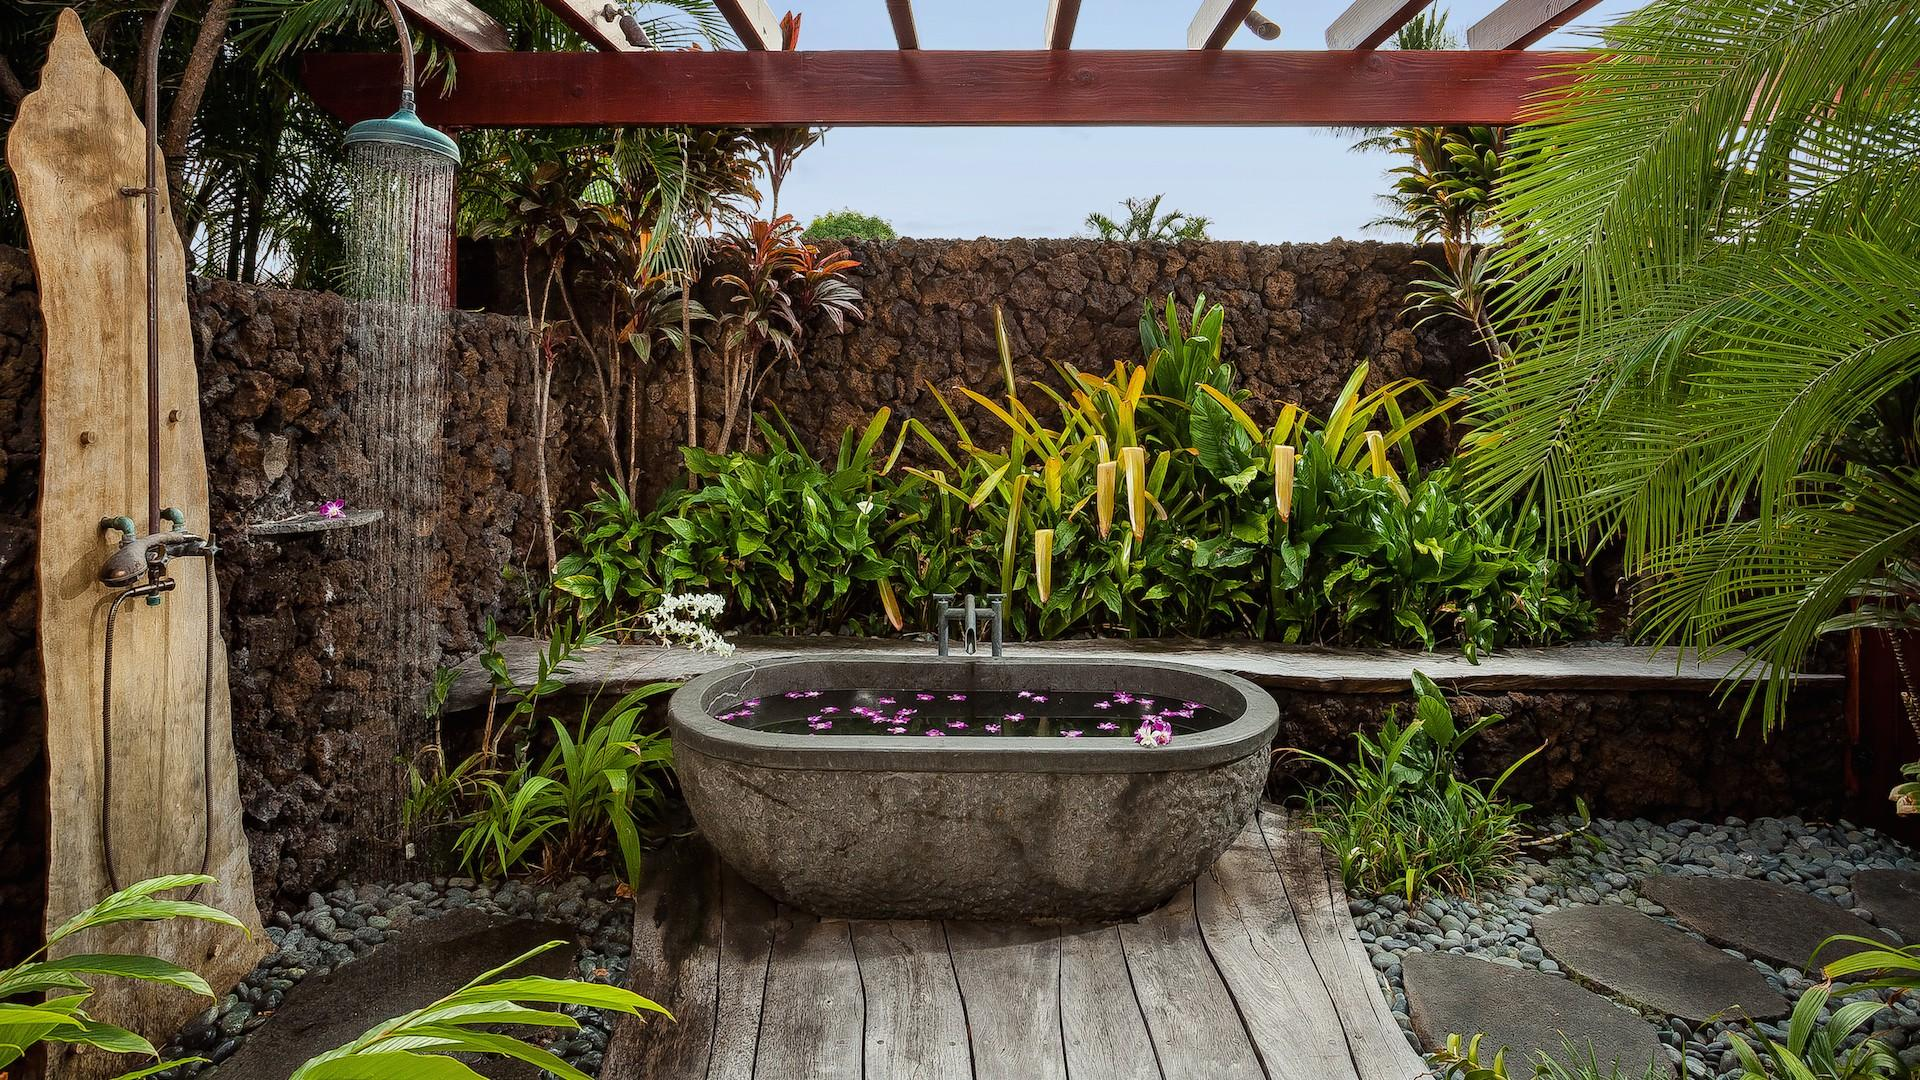 Outdoor shower garden and cast stone soaking tub surrounded by tropical landscaping.